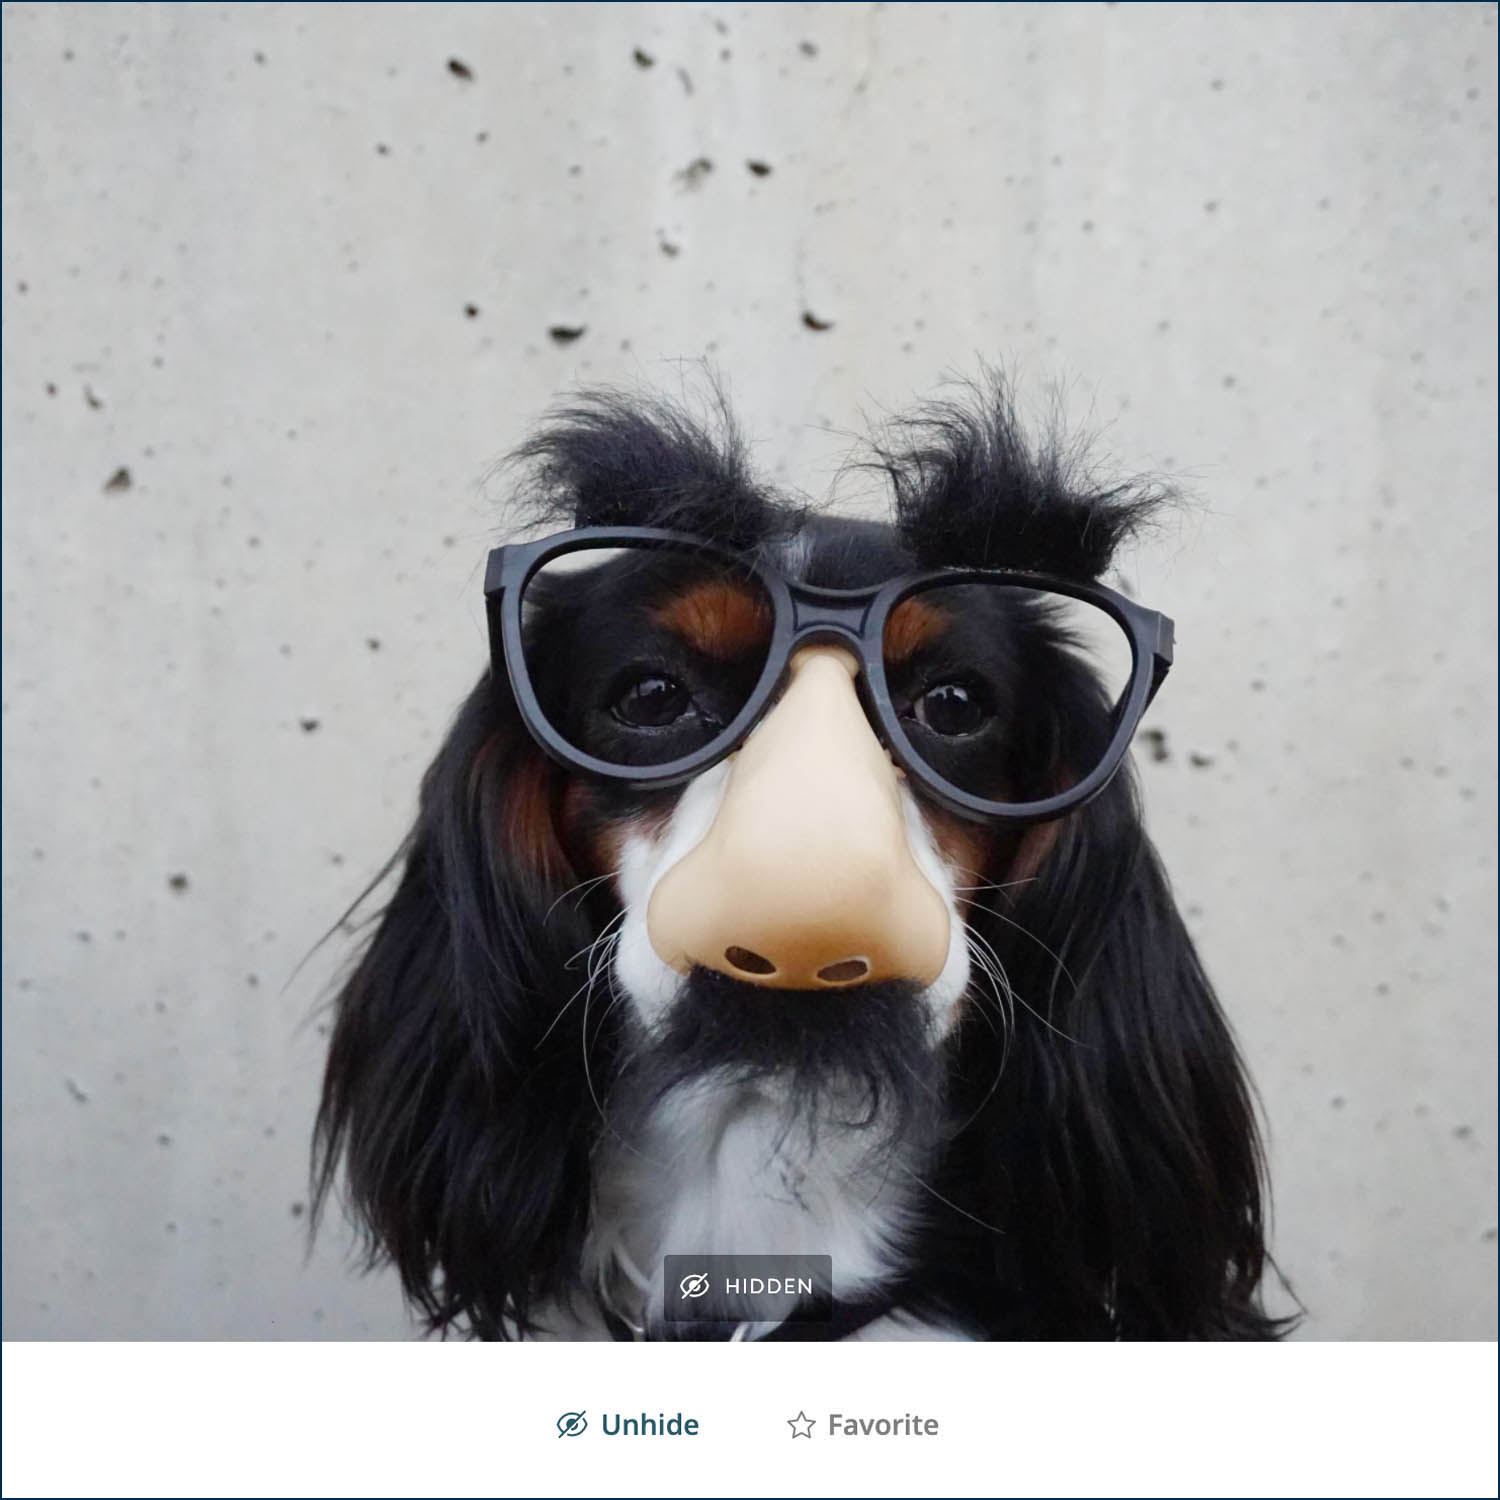 """ShootProof's """"hide"""" feature allows photo clients to hide images they want to keep private, like this silly dog portrait by Braydon Anderson"""